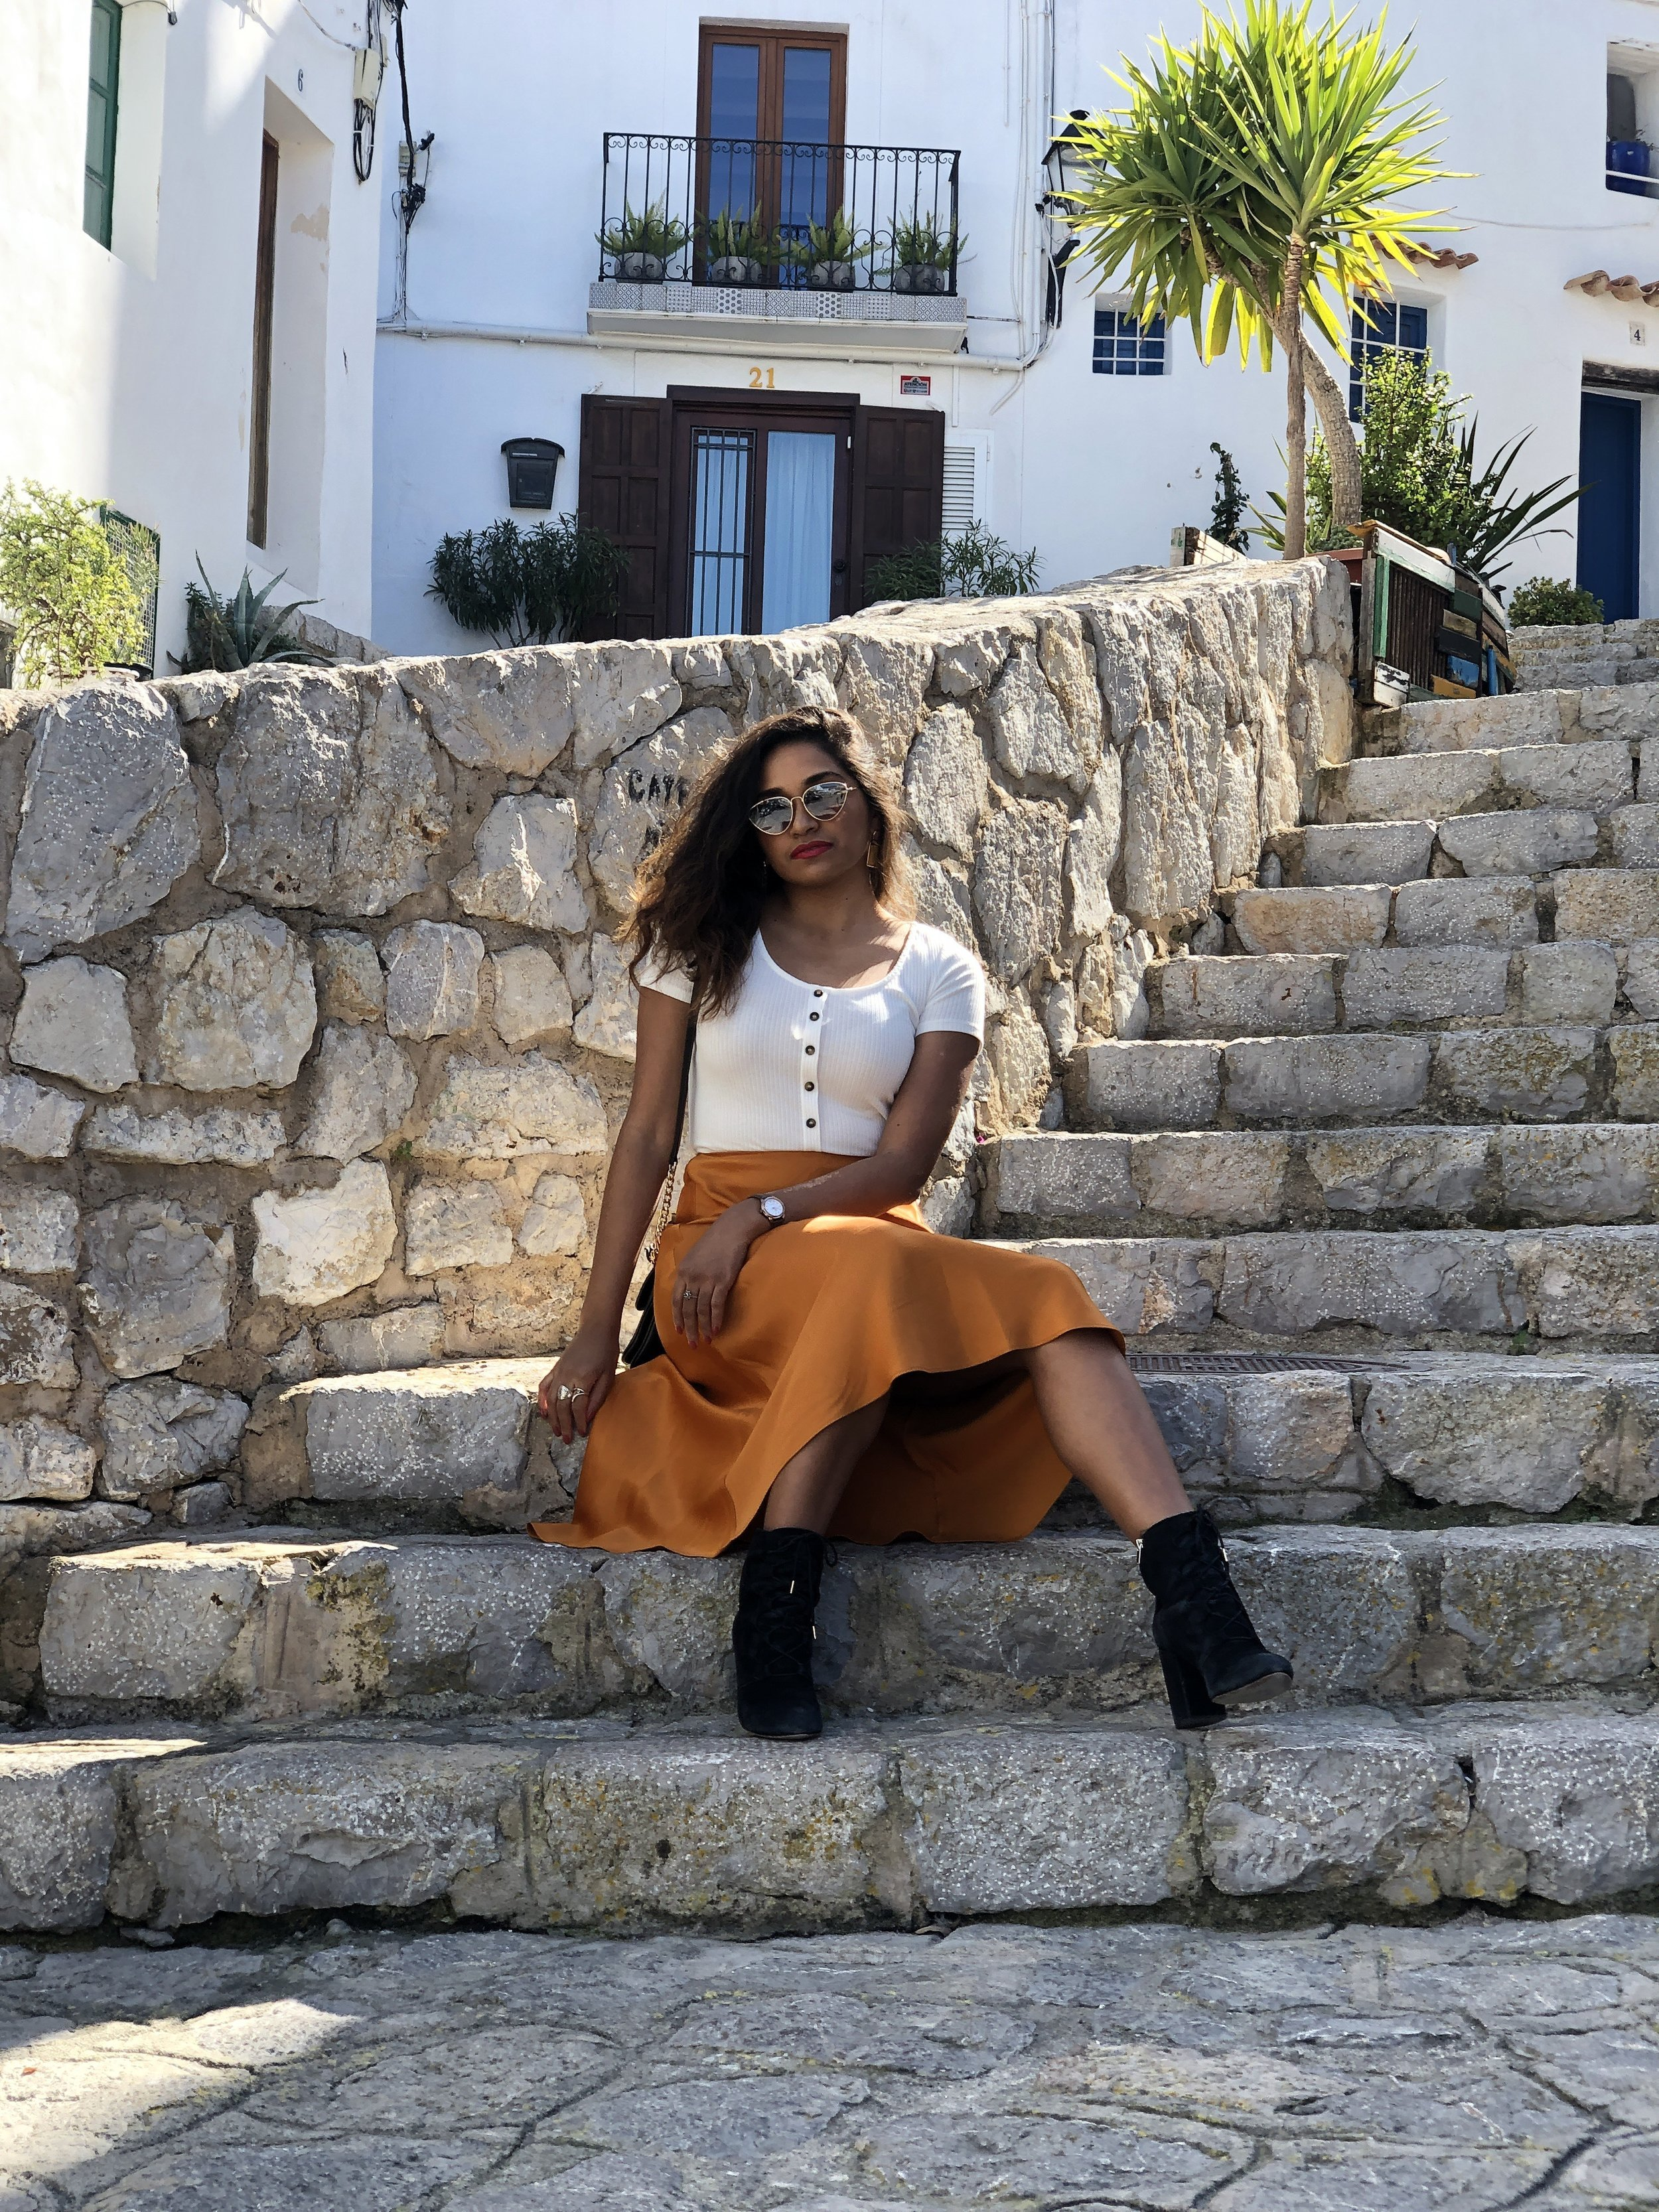 afro latina in spain